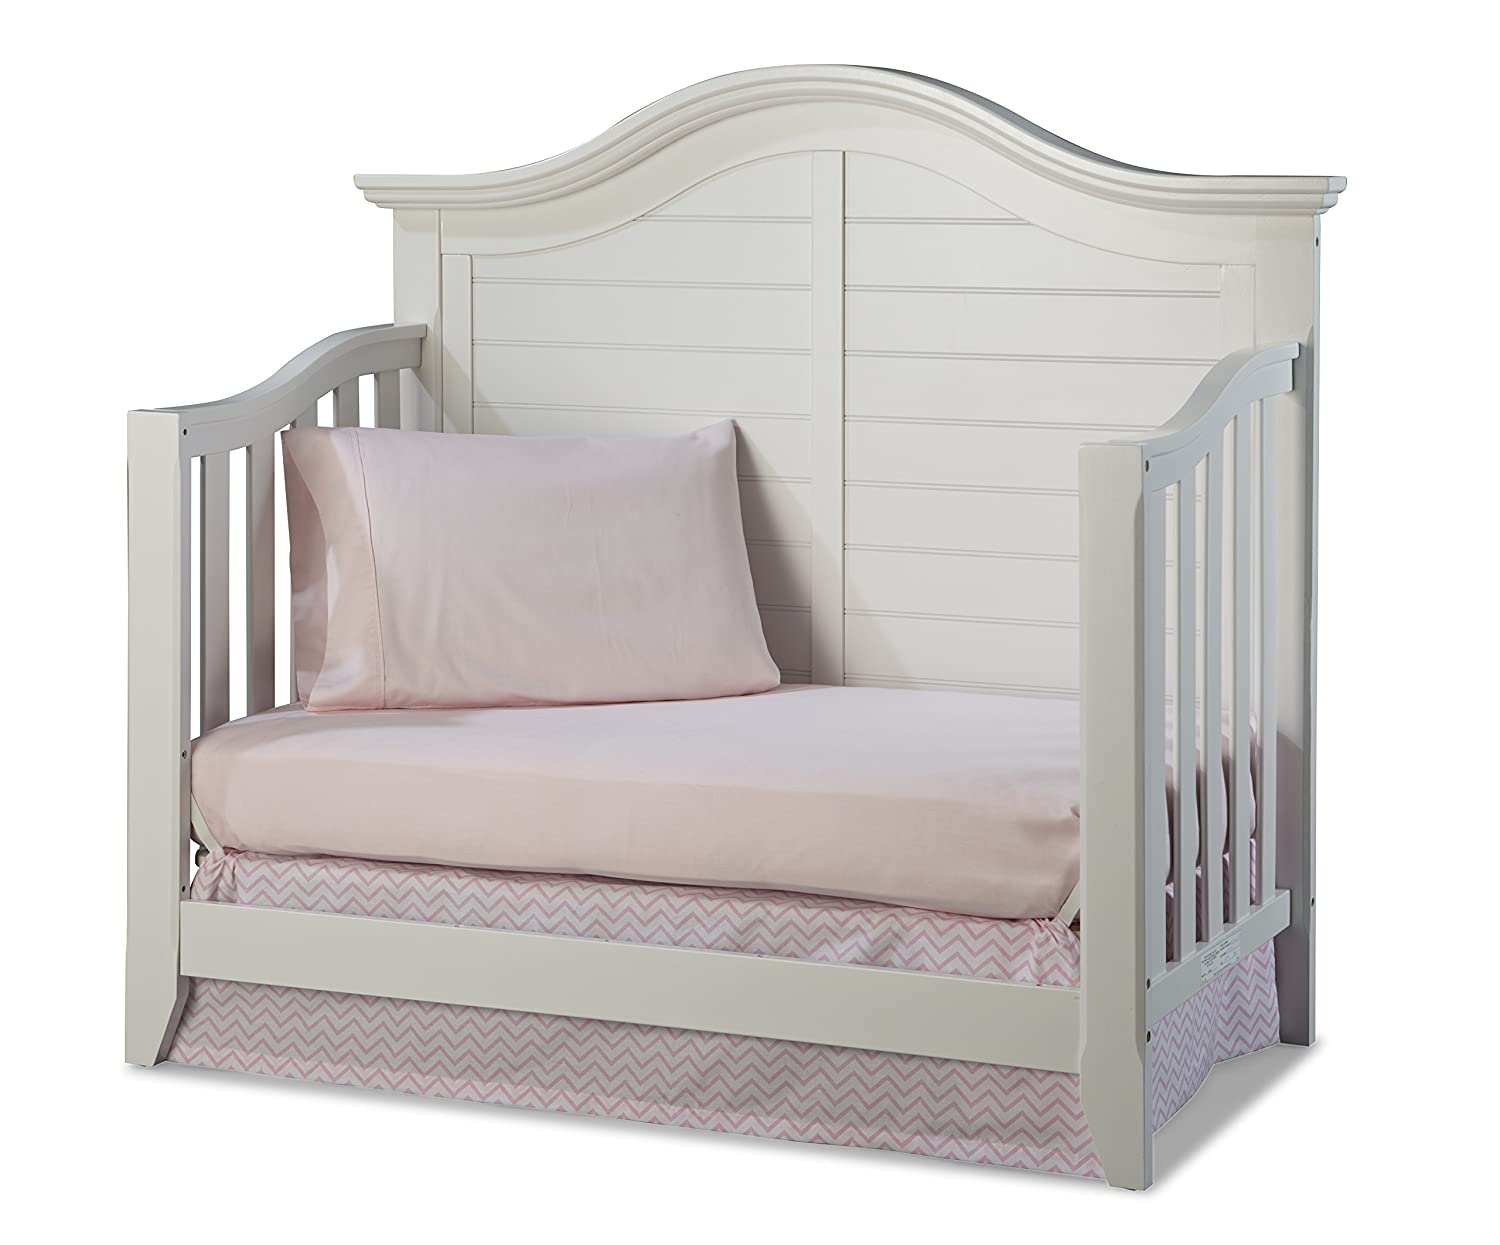 Amazon.com : Thomasville Kids Southern Dunes Lifestyle 4 In 1 Convertible  Crib, White : Baby